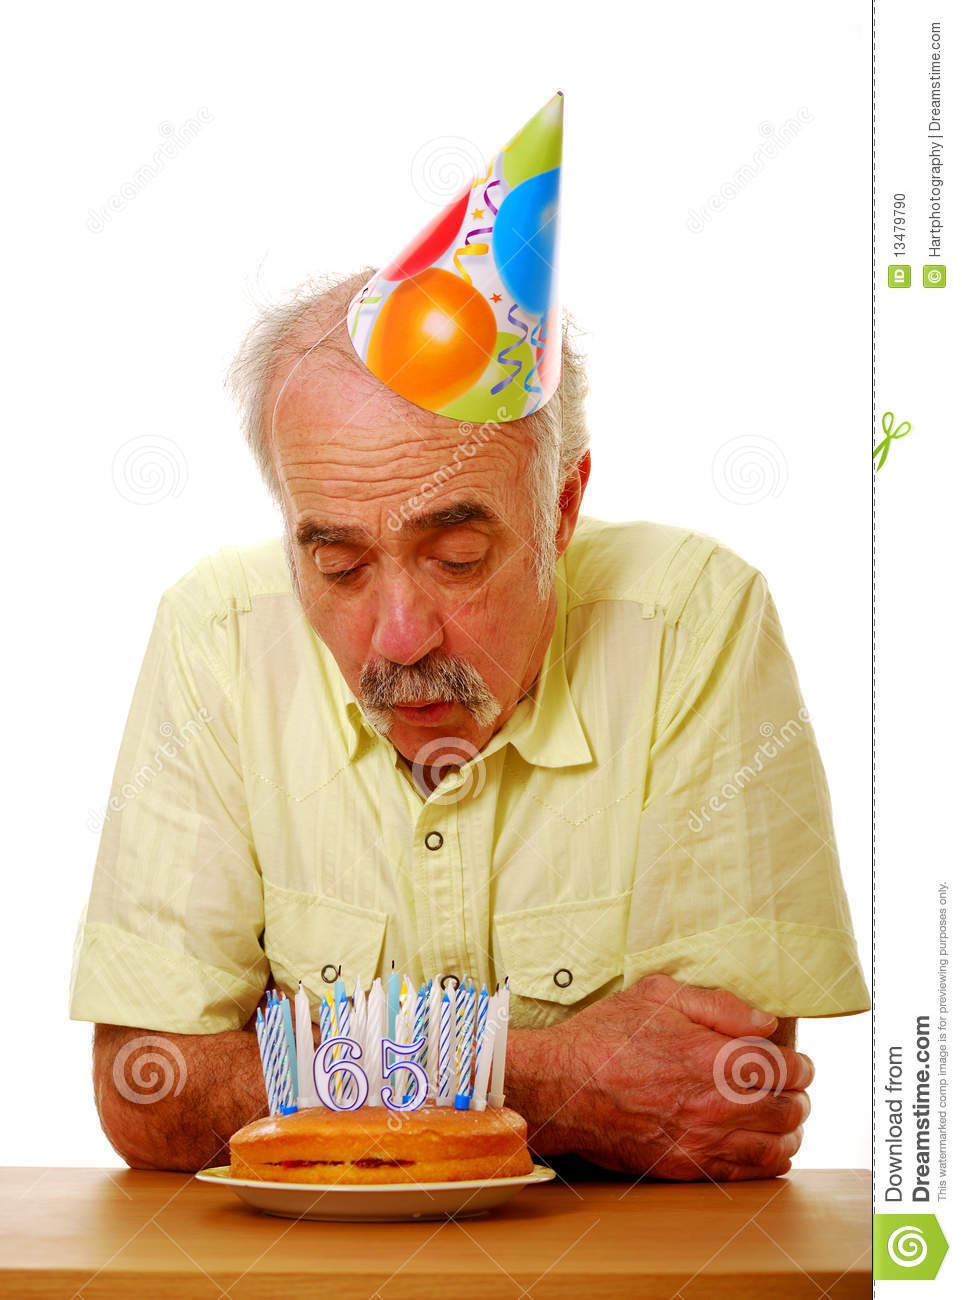 Blowing Out Candles Stock Photo Image 13479790